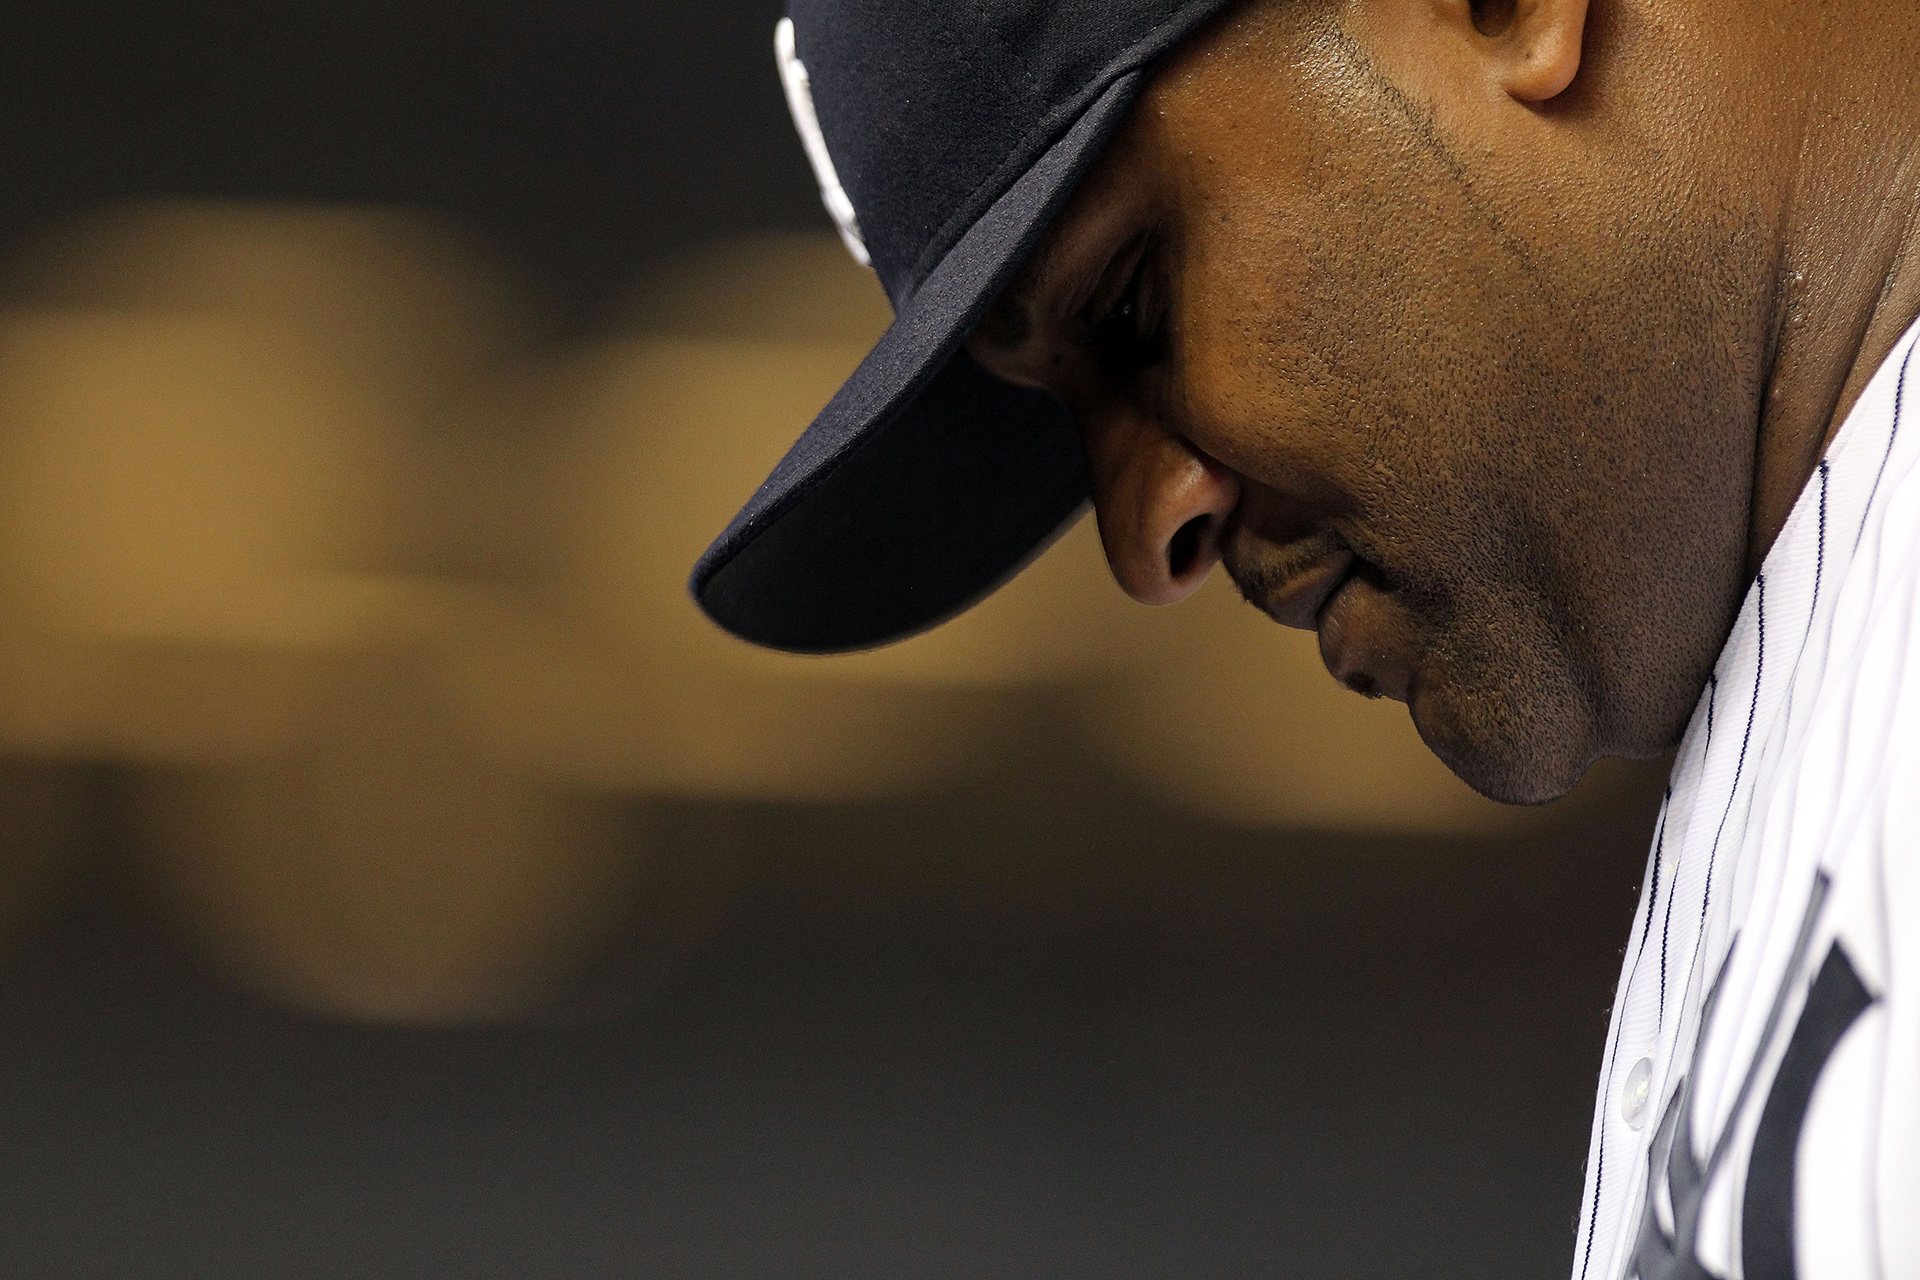 NEW YORK, NY - AUGUST 24:  CC Sabathia #52 of the New York Yankees is pulled from the game by manager Joe Girardi #28 against the Oakland Athletics on August 24, 2011 at Yankee Stadium in the Bronx borough of New York City.  (Photo by Nick Laham/Getty Images)